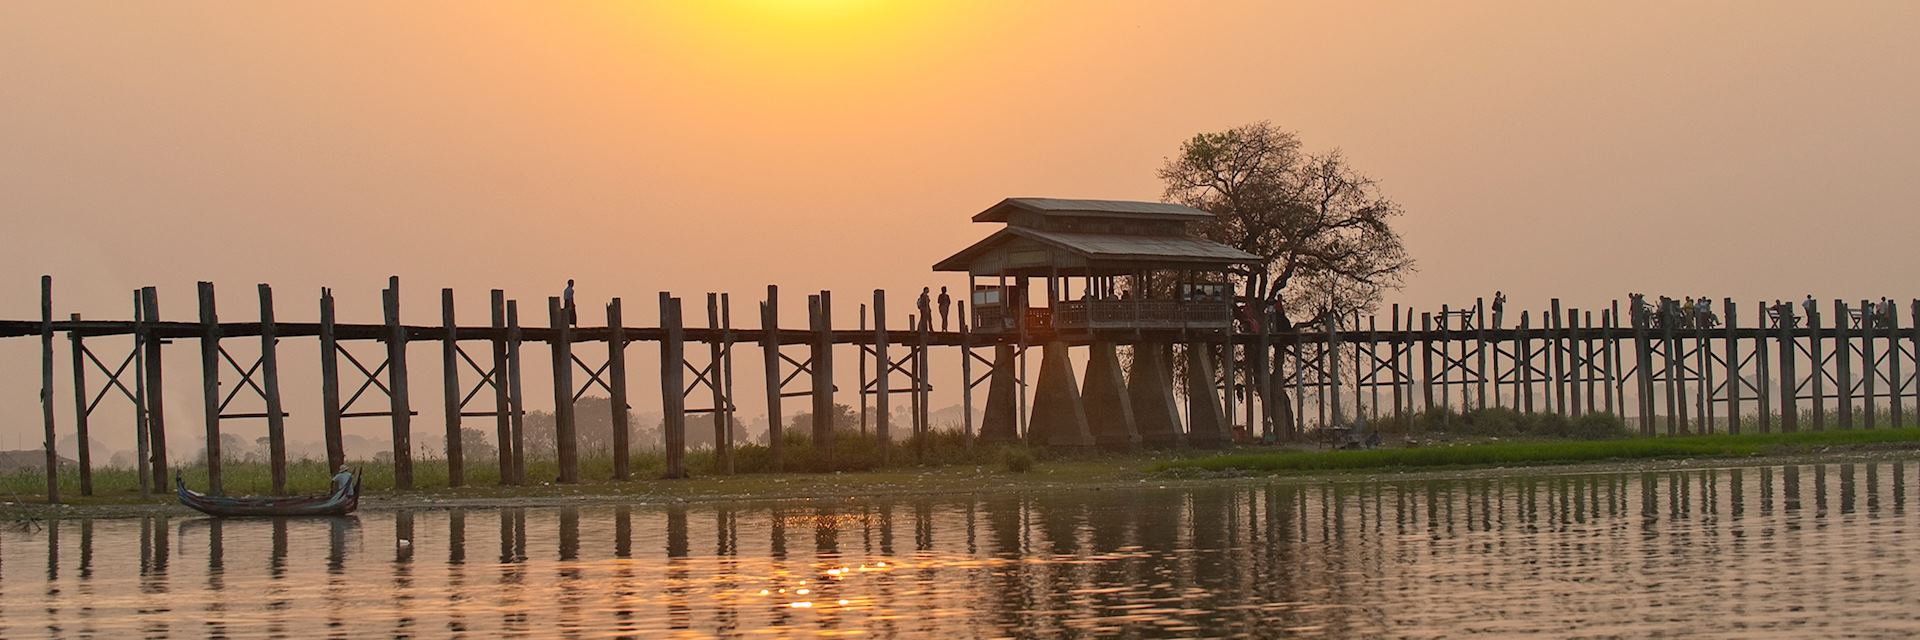 U-Bein-Bridge, Mandalay, Myanmar